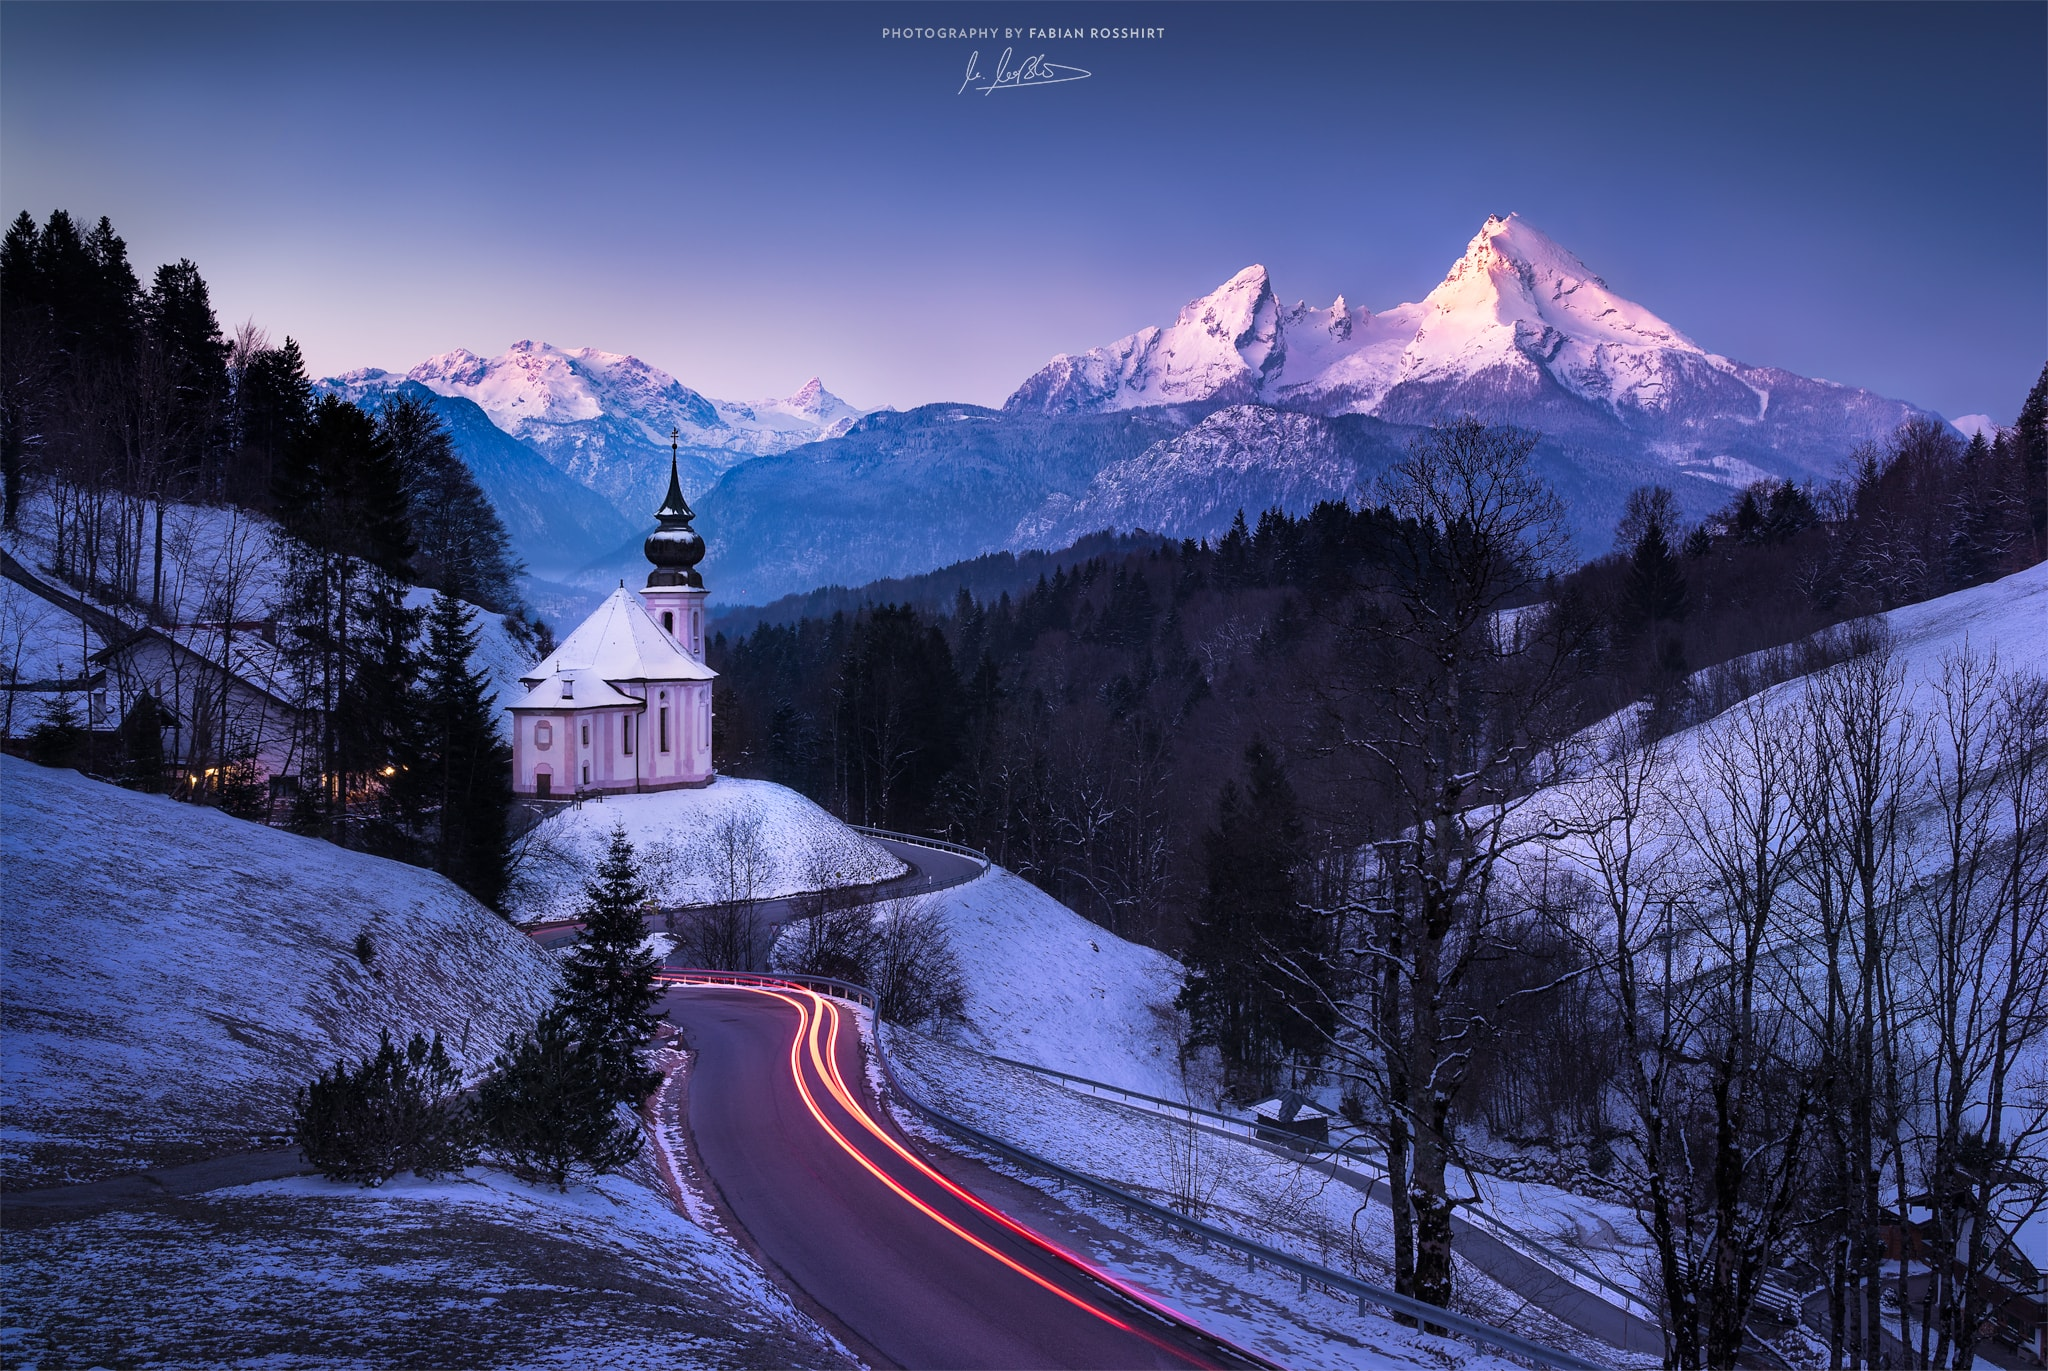 Maria Gern, Kapelle, Watzmann, Berg, Sonnenaufgang, Blau, Morgen, Morning, Chapell, Sun, Light, AWAKENED (Berchtesgaden Wallpaper HD Bilder Hintergrundbild Background)